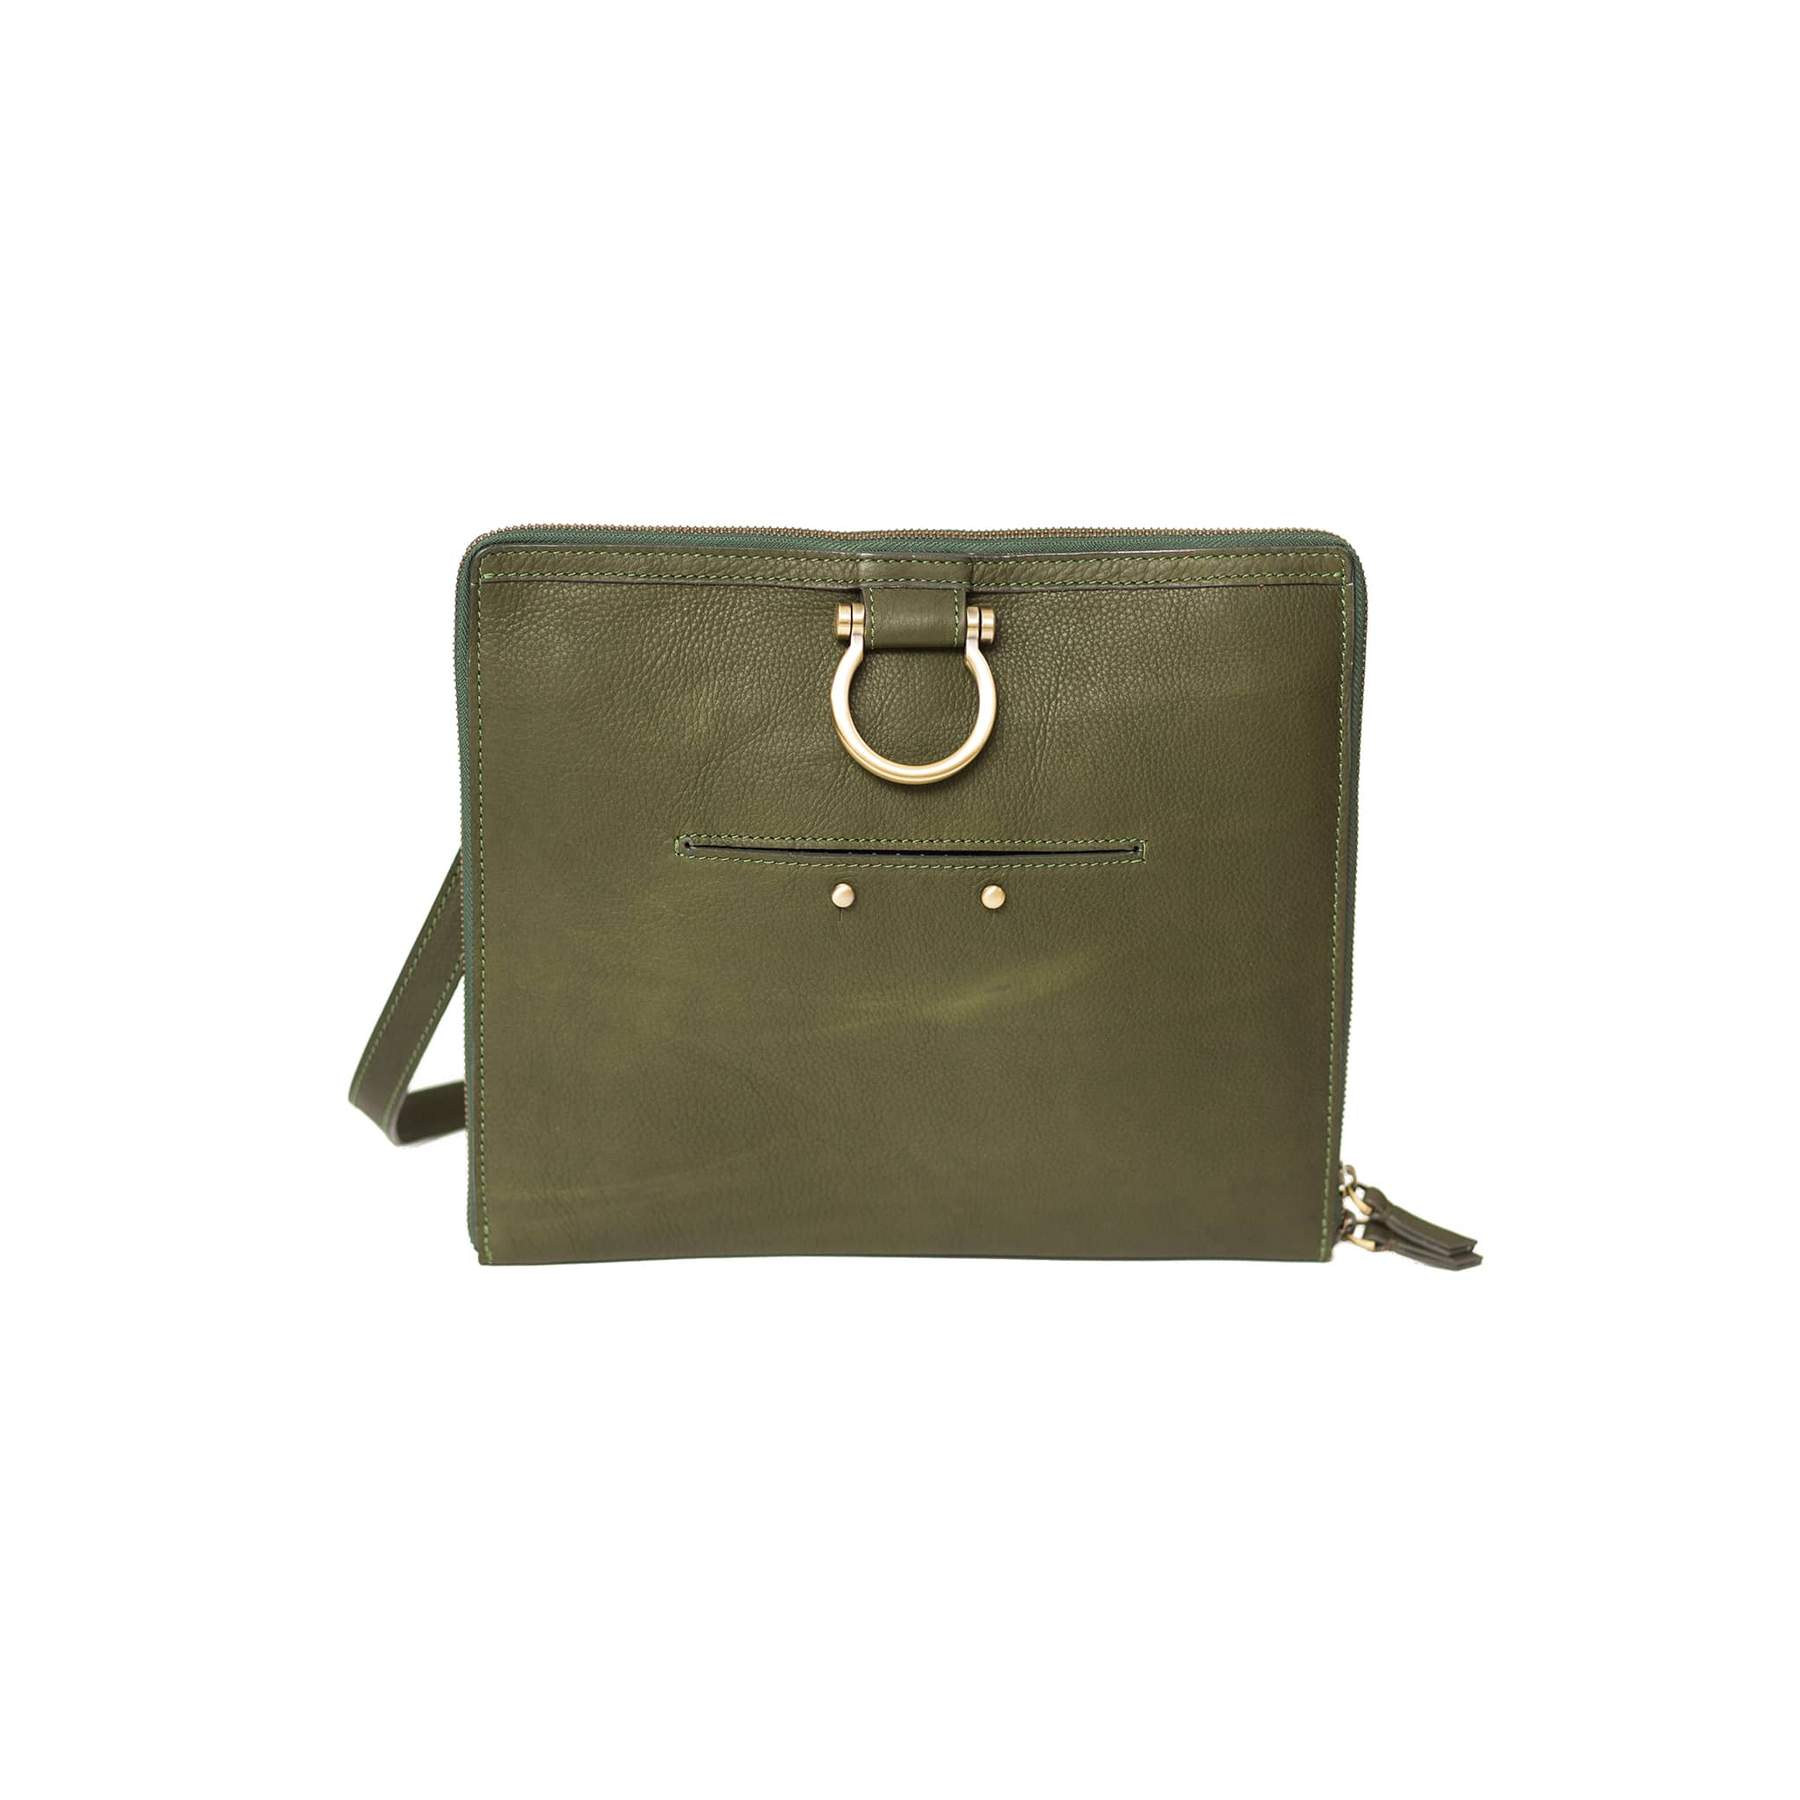 M Leather Crossbody Handbag (Olive Raw Leather)